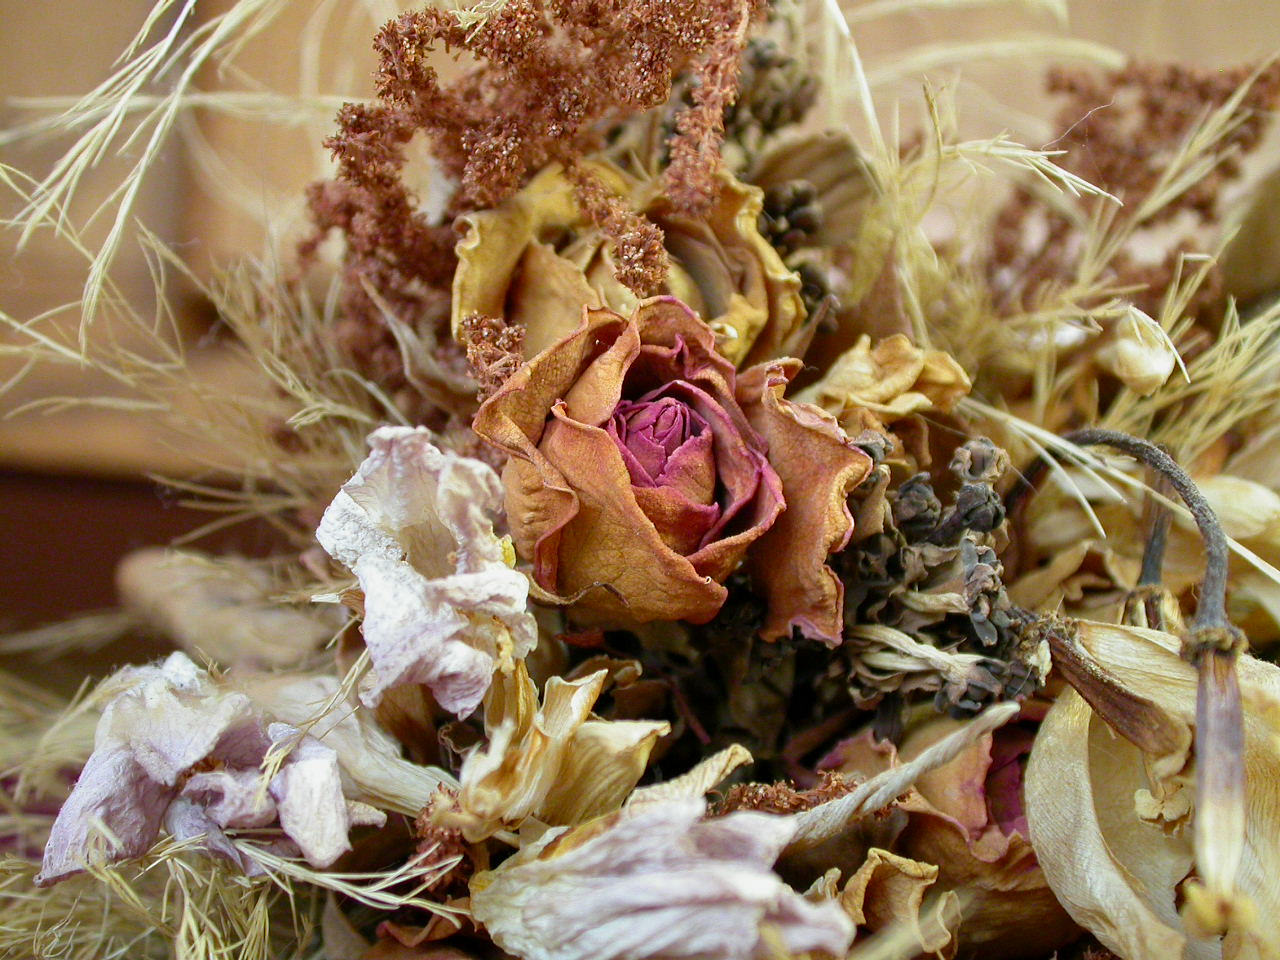 Dry flower decoration, Decoration, Dried, Dry, Flowers, HQ Photo